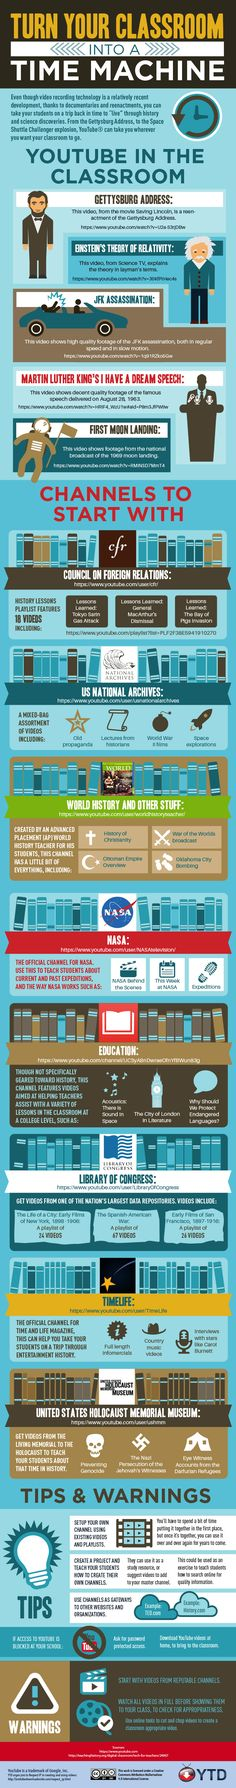 Infographic: Turn Your Classroom into a Time Machine http://www.edtechmagazine.com/k12/article/2014/05/using-youtube-time-machine-your-classroom-infographic